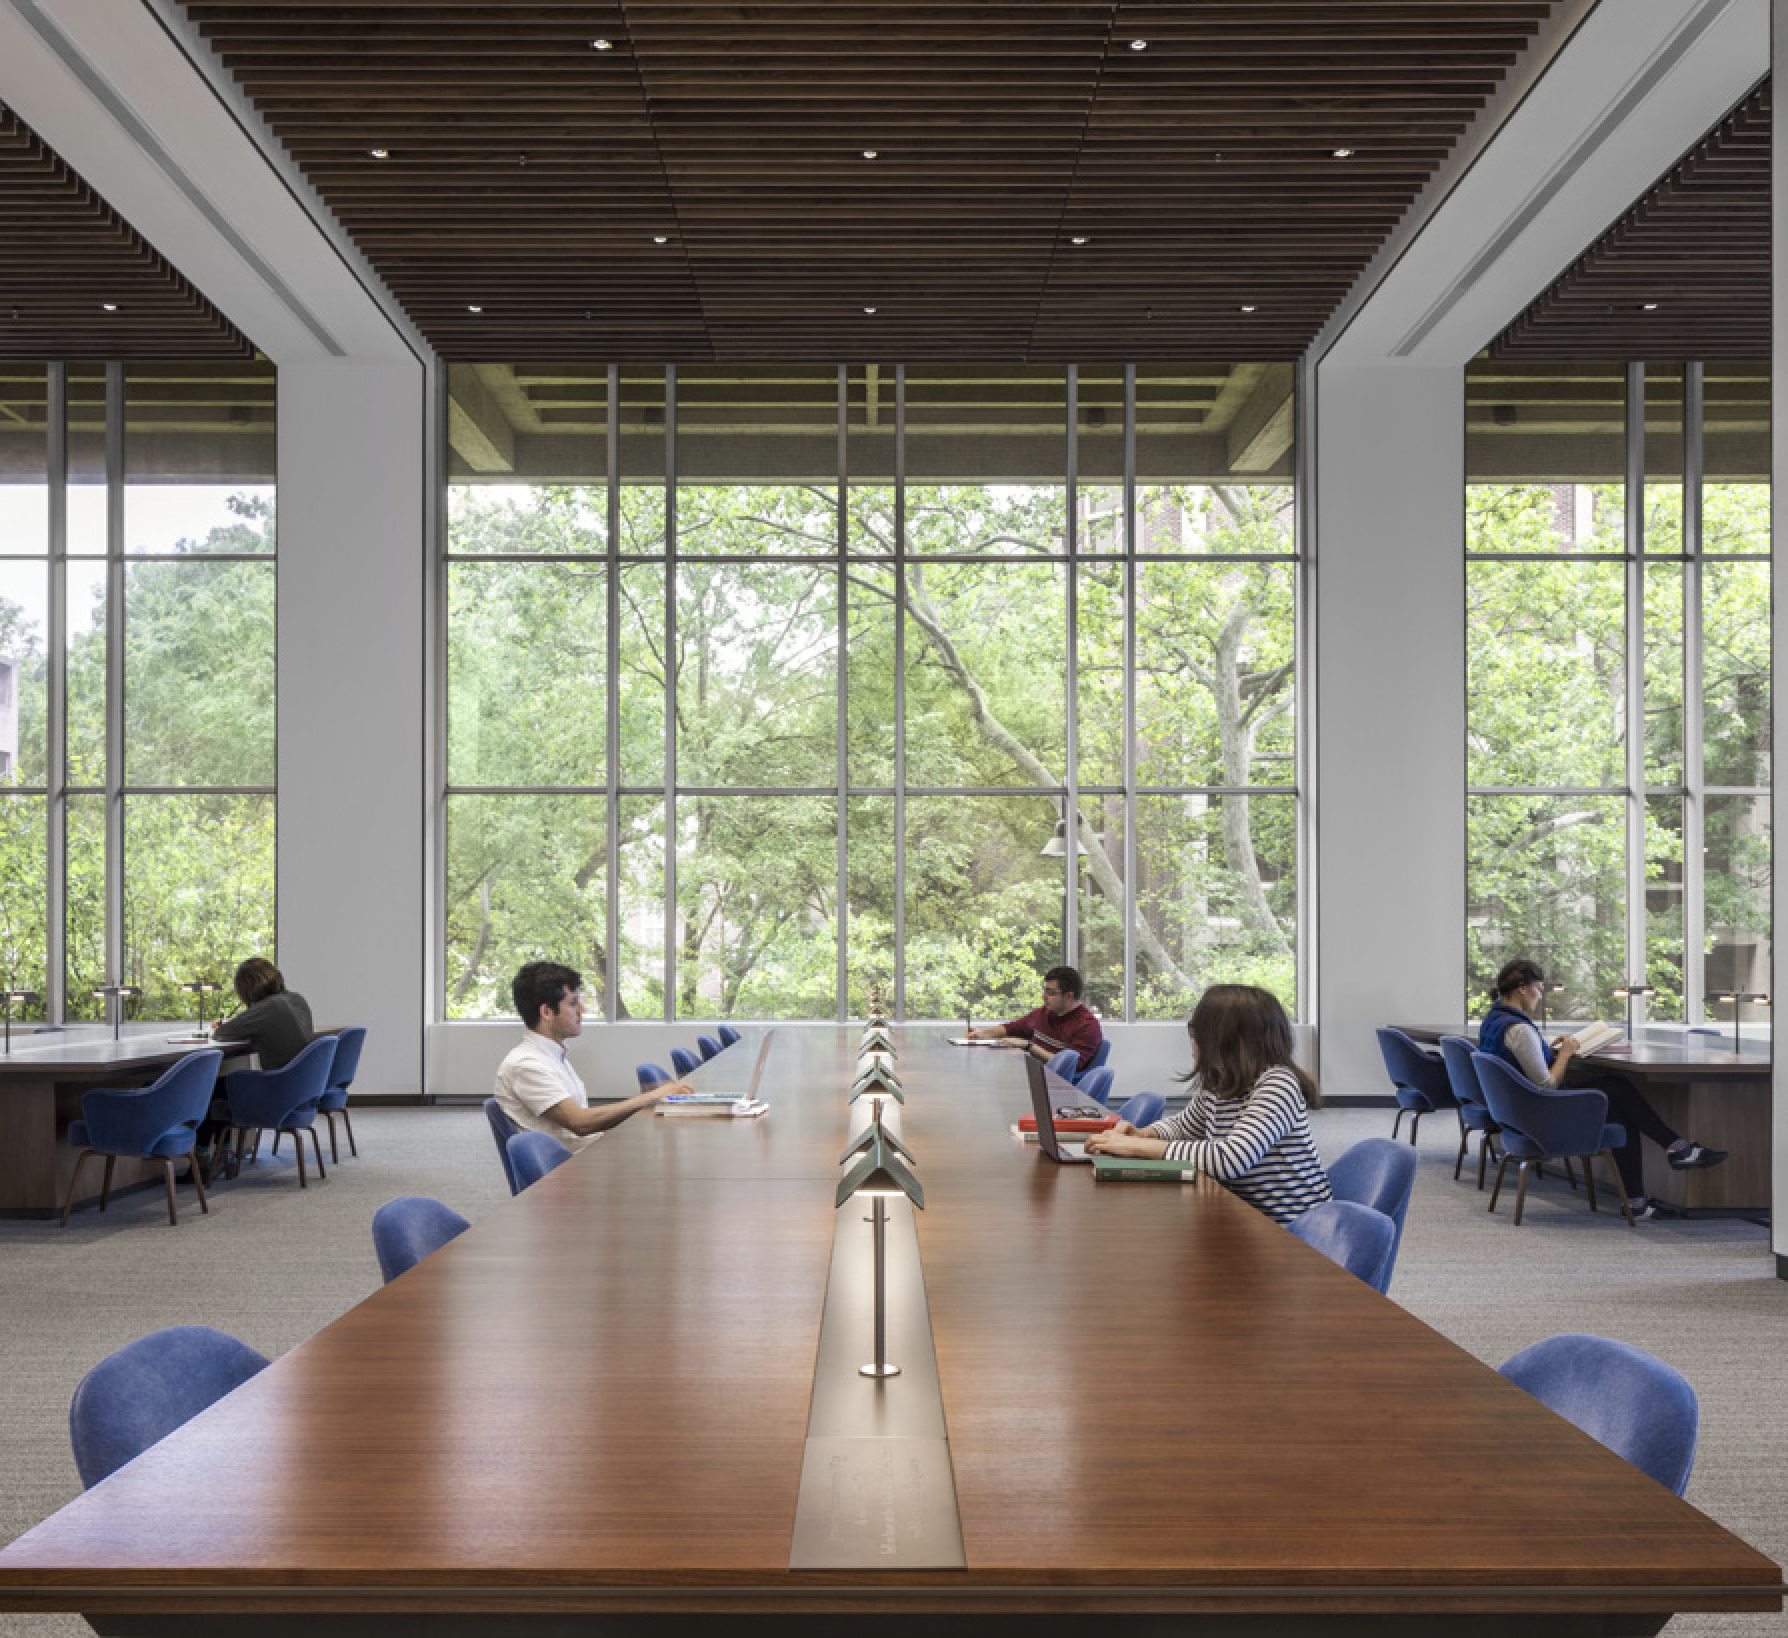 University Of Pennsylvania Van Pelt Library Featured Work By M Cohen And Sons